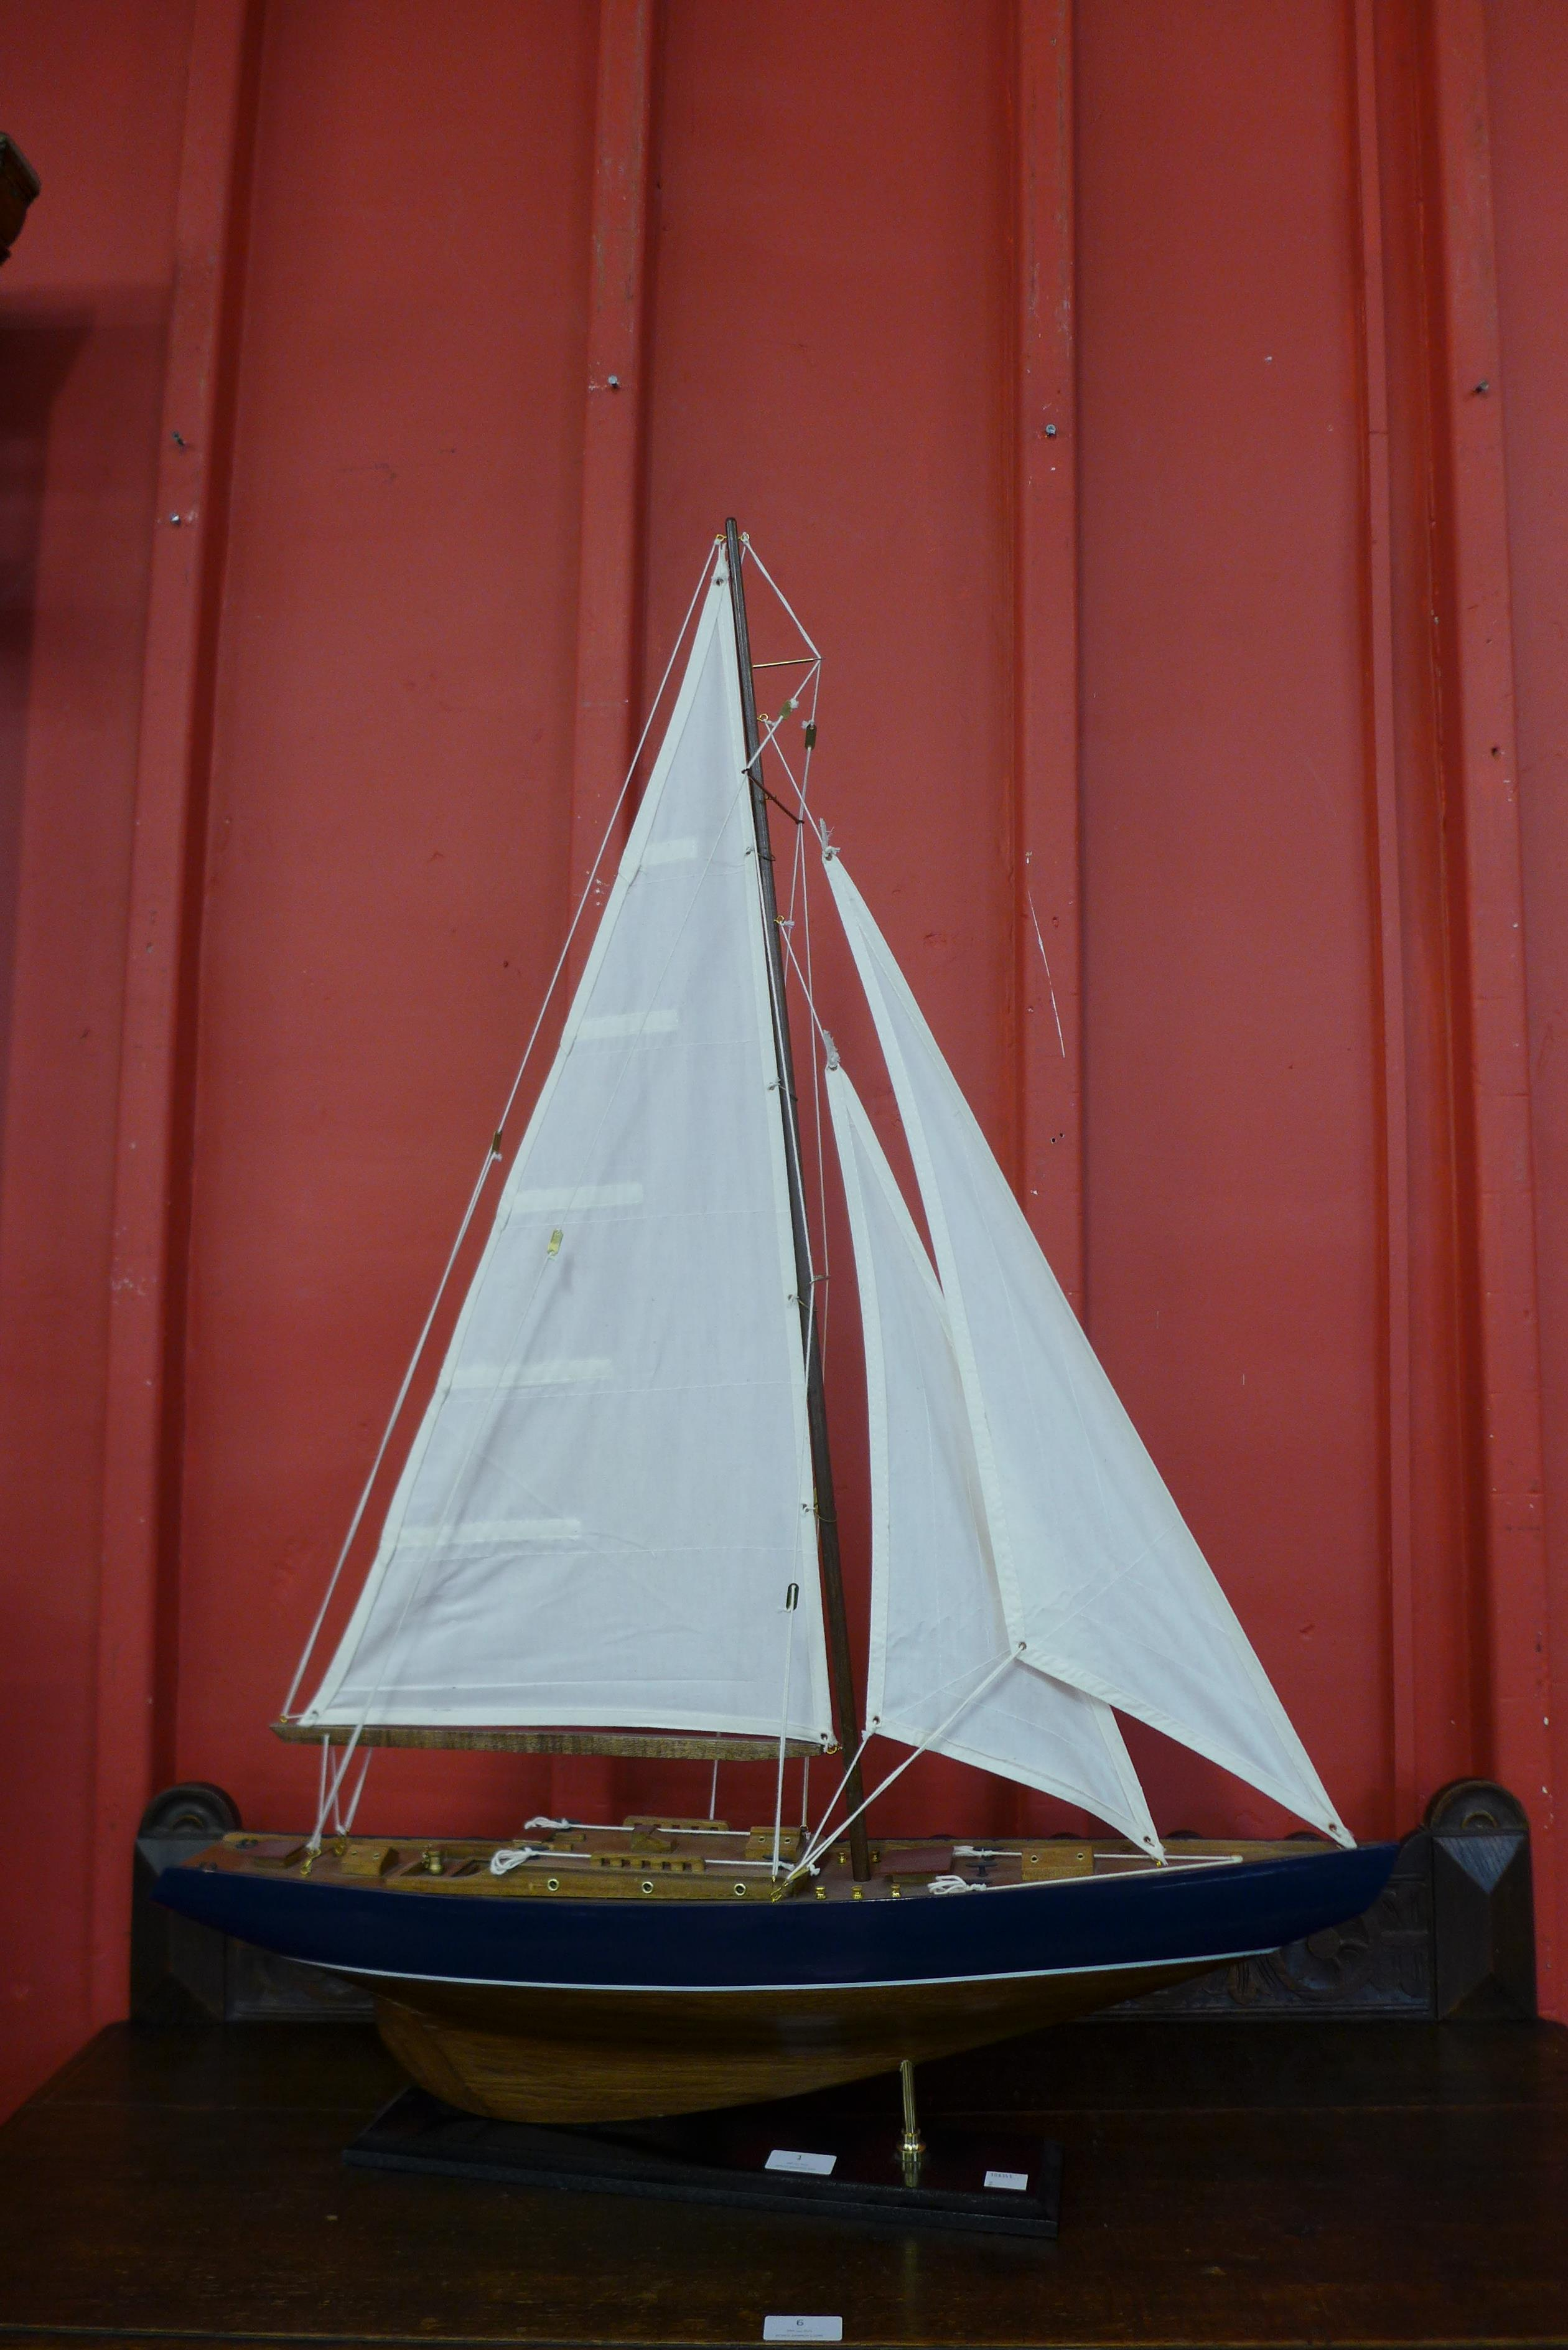 A scale model of a fully rigged yacht - Image 2 of 4